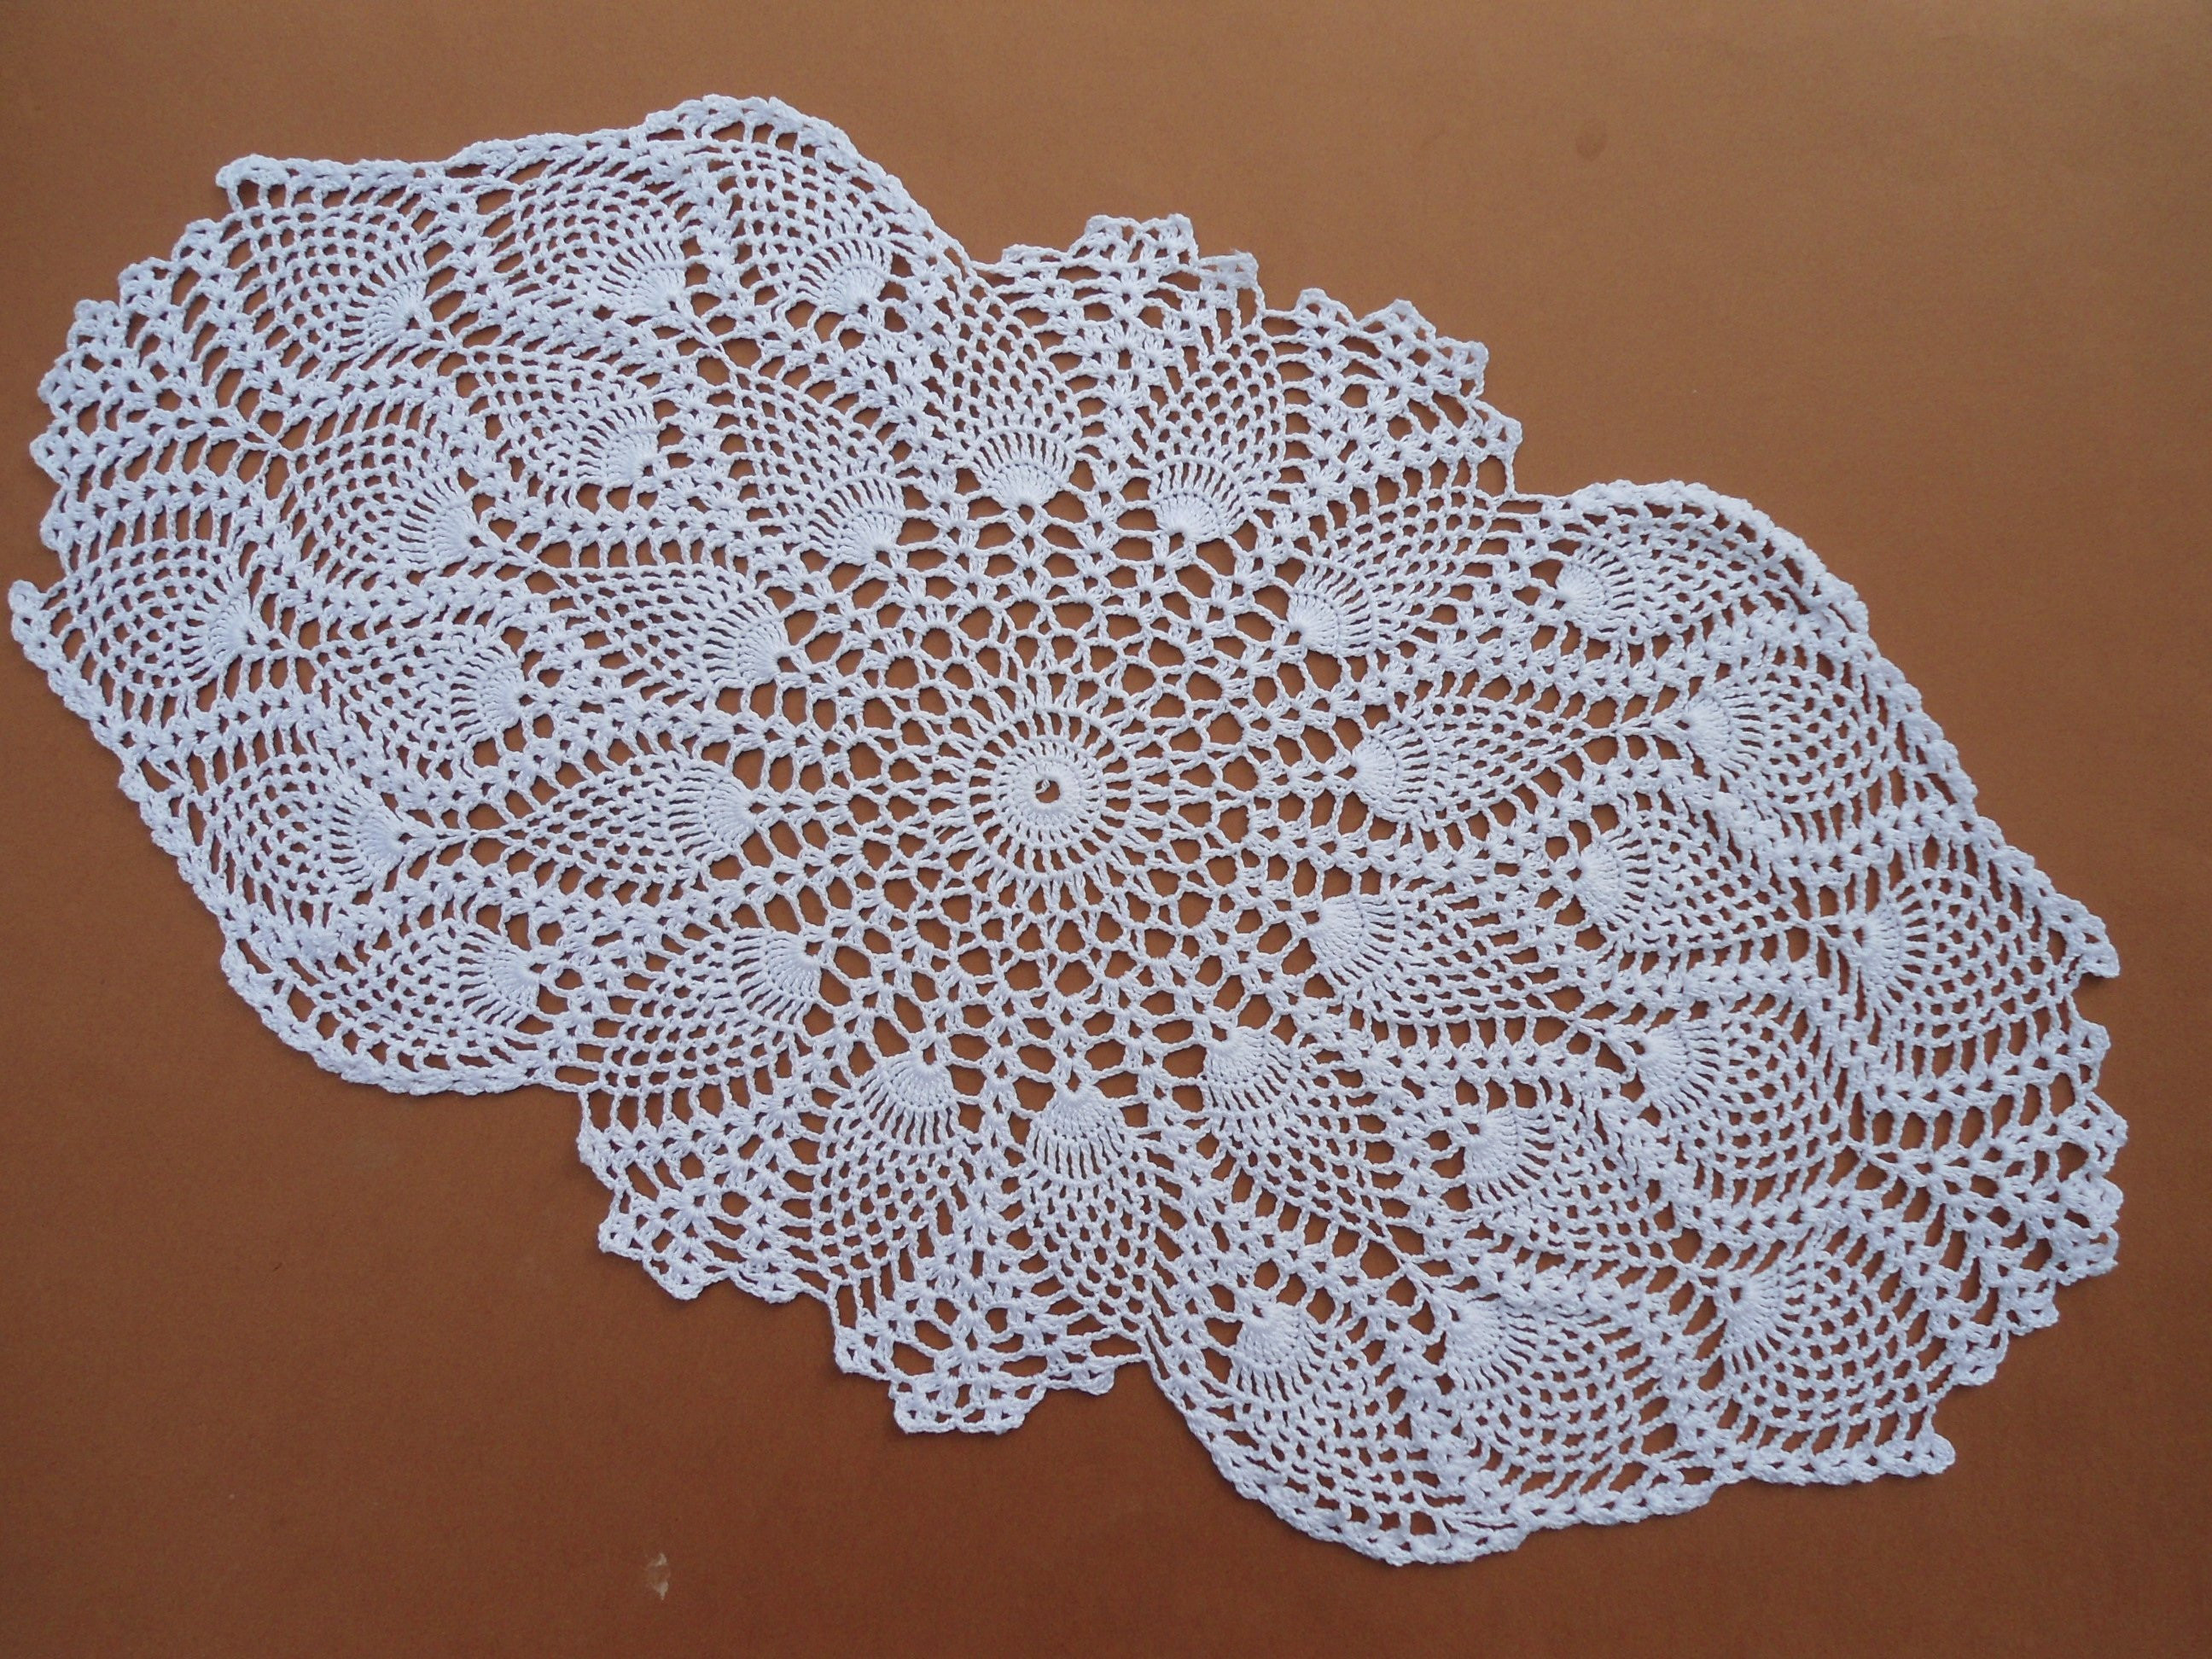 Crochet Runner Luxury Oval Crochet Doily Crochet Table Runner White Crochet Of Fresh 45 Ideas Crochet Runner